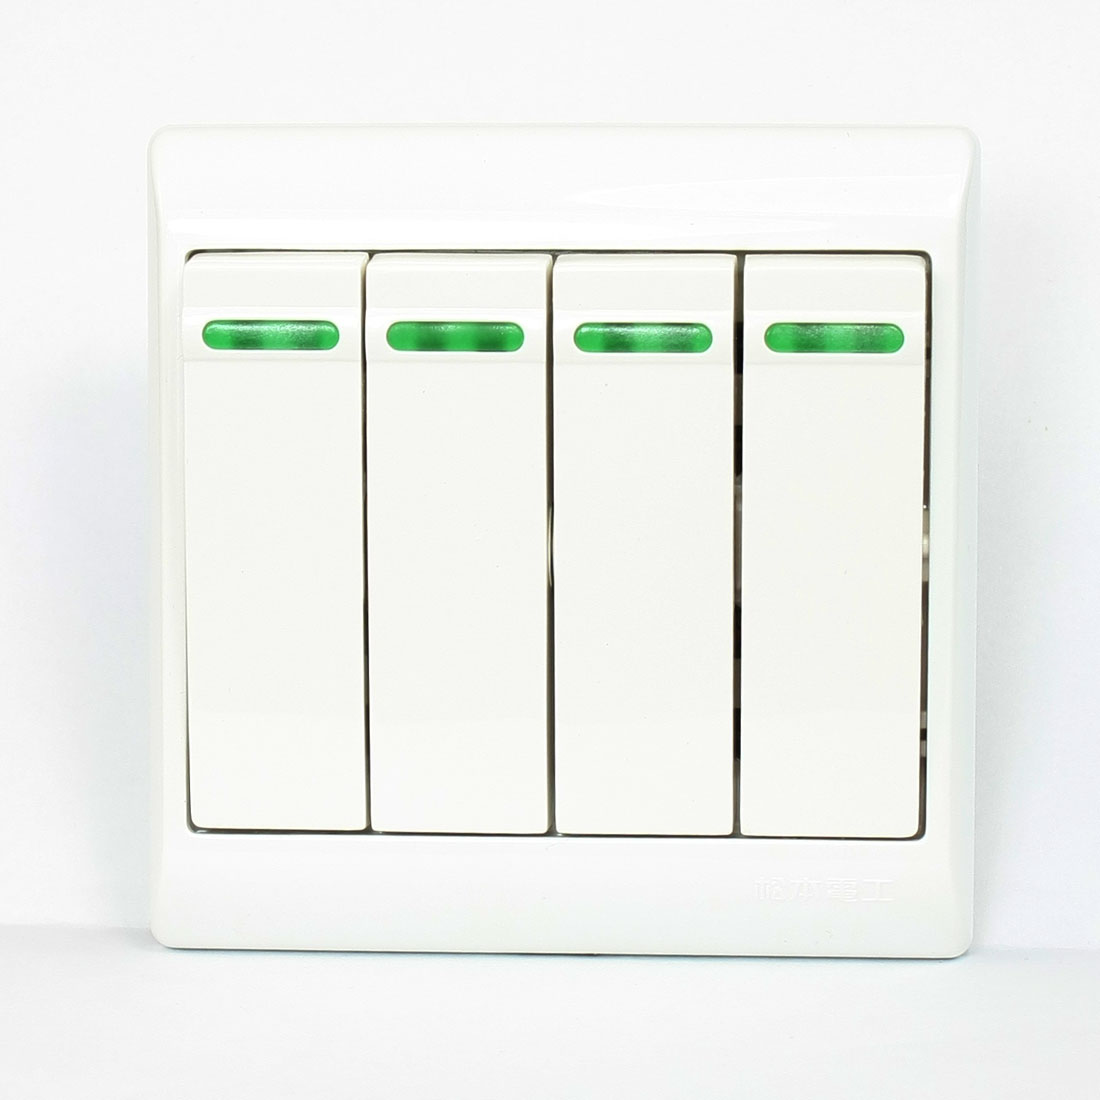 AC 250V 10A White Plastic Square 4 Gang SPDT Wall Panel Light Switch